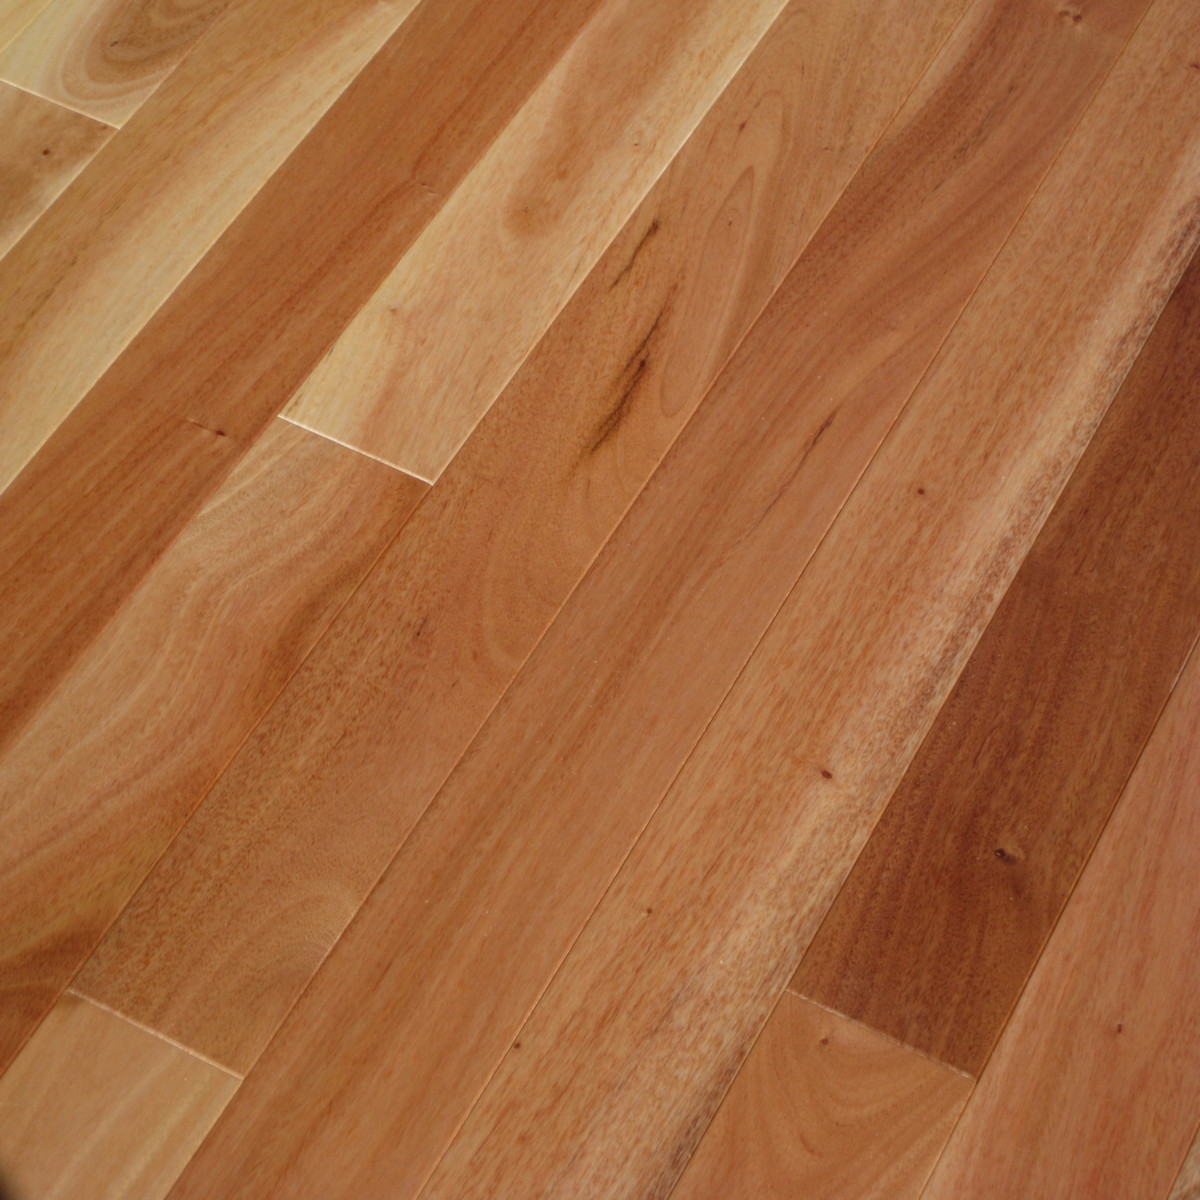 Amendoim Hardwood Flooring